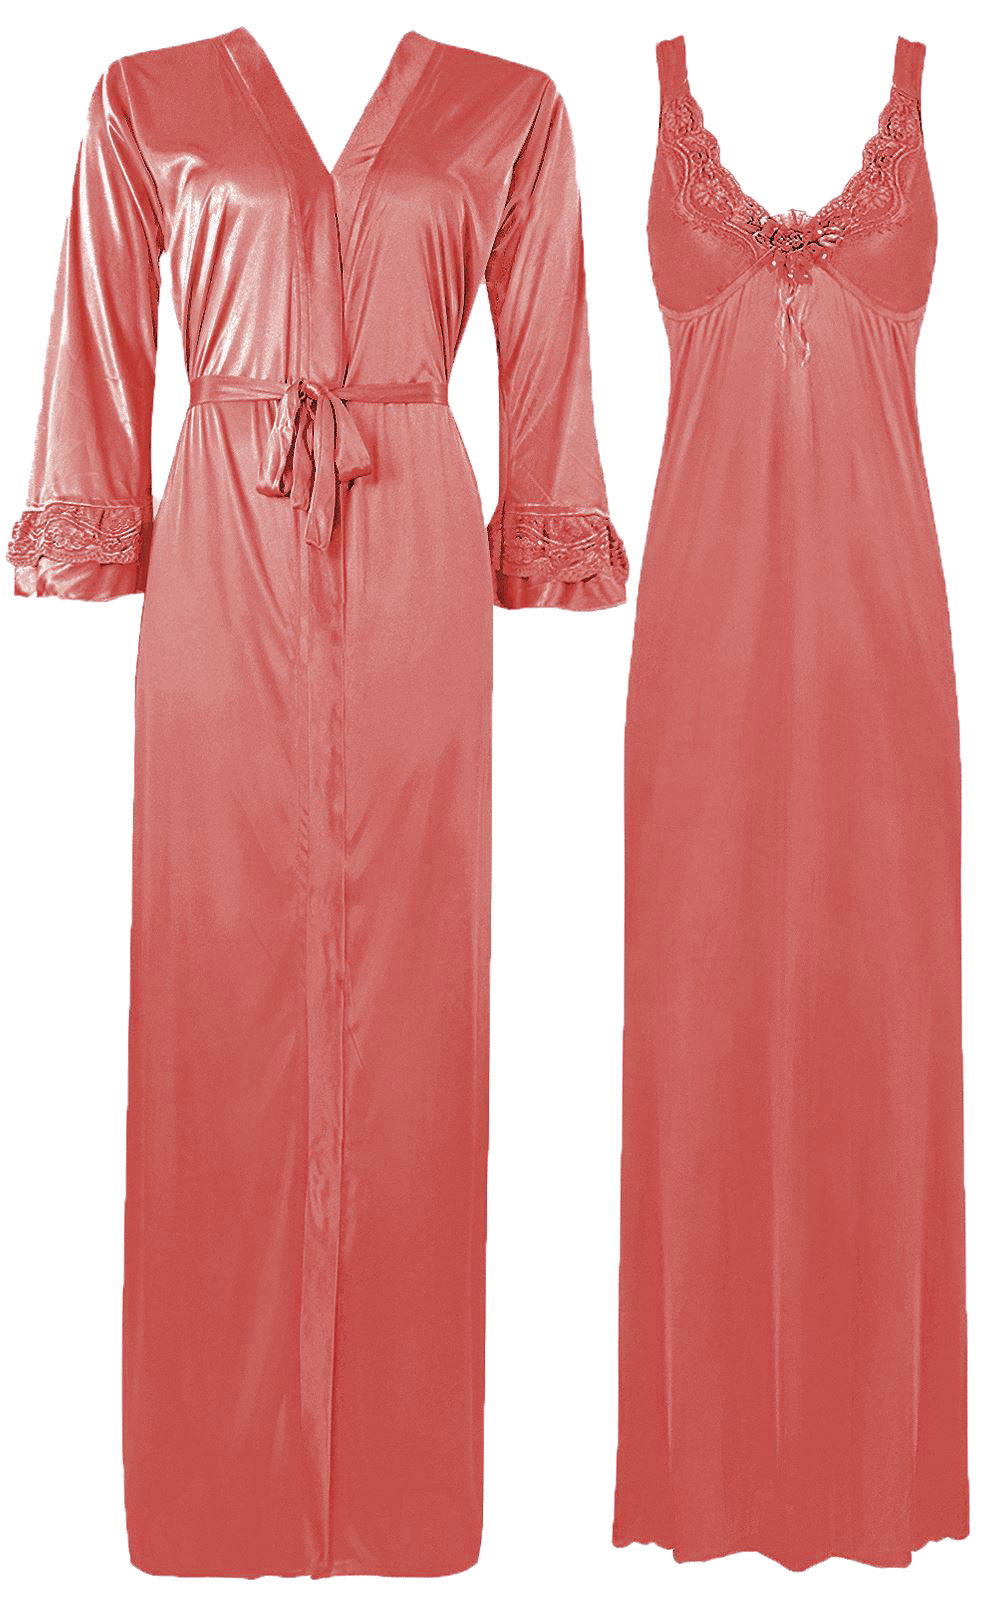 Color: Coral 2 Piece Satin Nighty and Robe With Long Sleeve Dressing Gown Size: XL